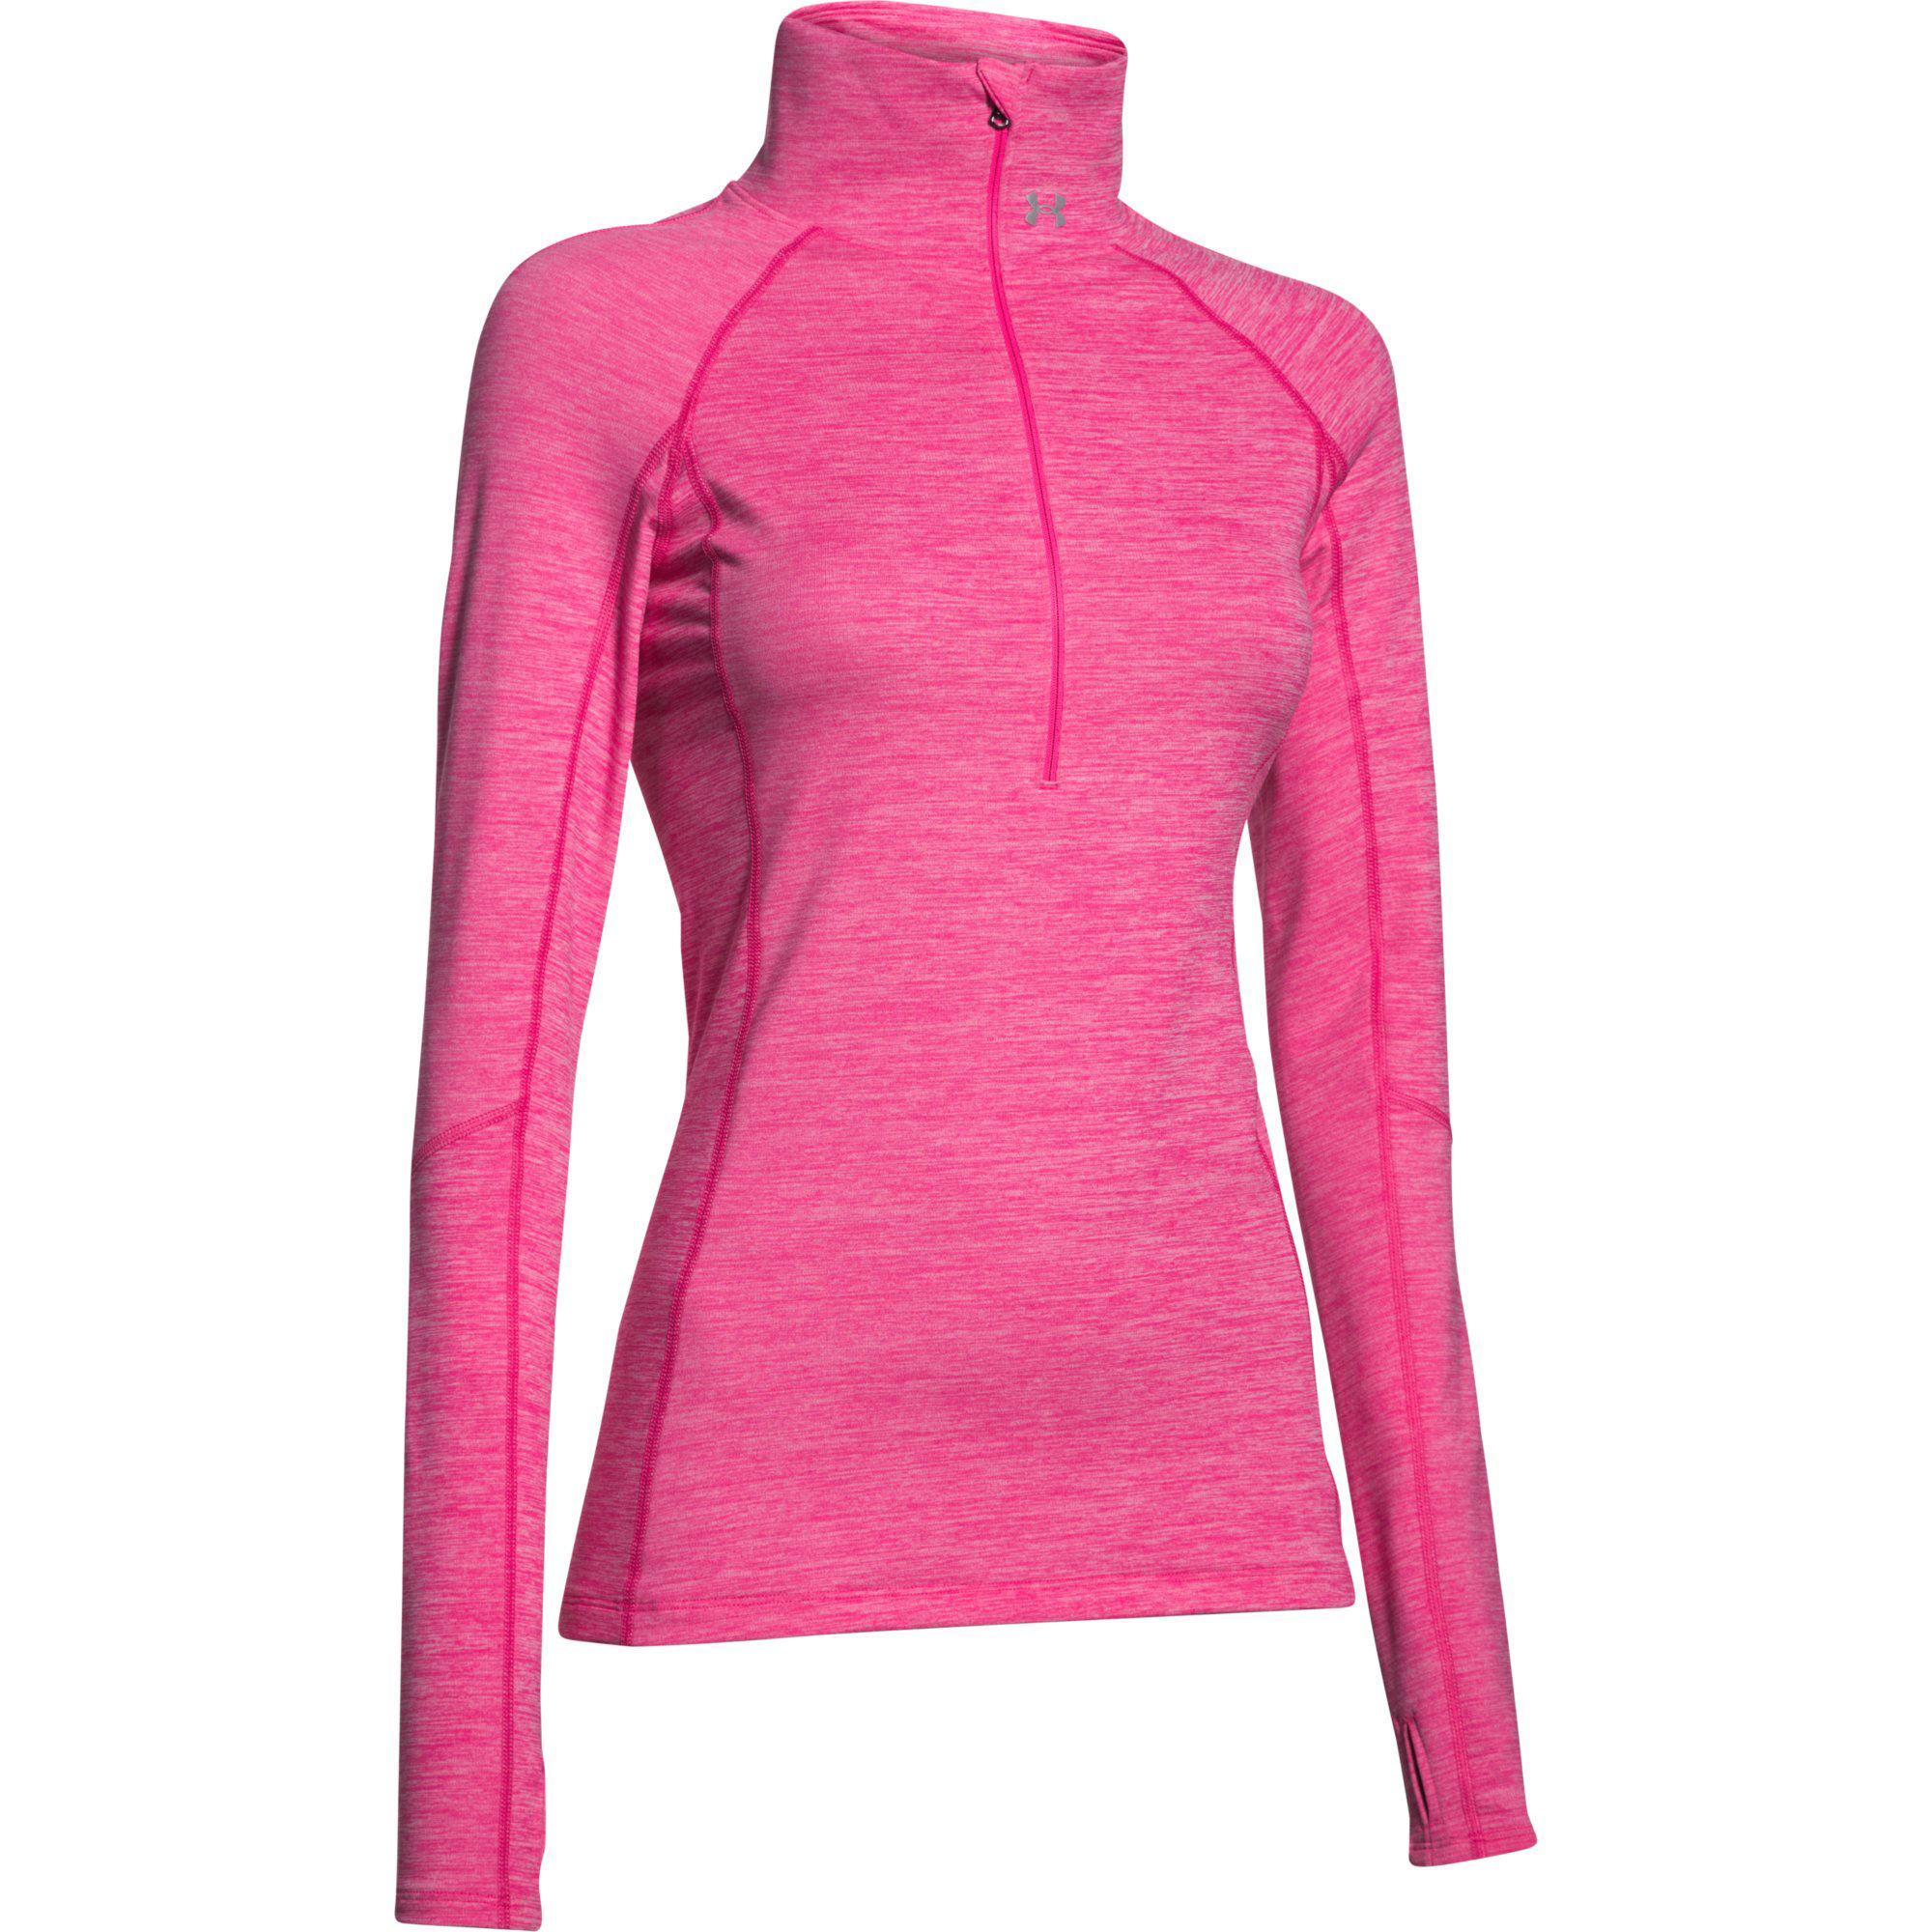 armour women Shop everything women's under armour at eastbay from clothing to shoes, performance to casual, we have the under armour.